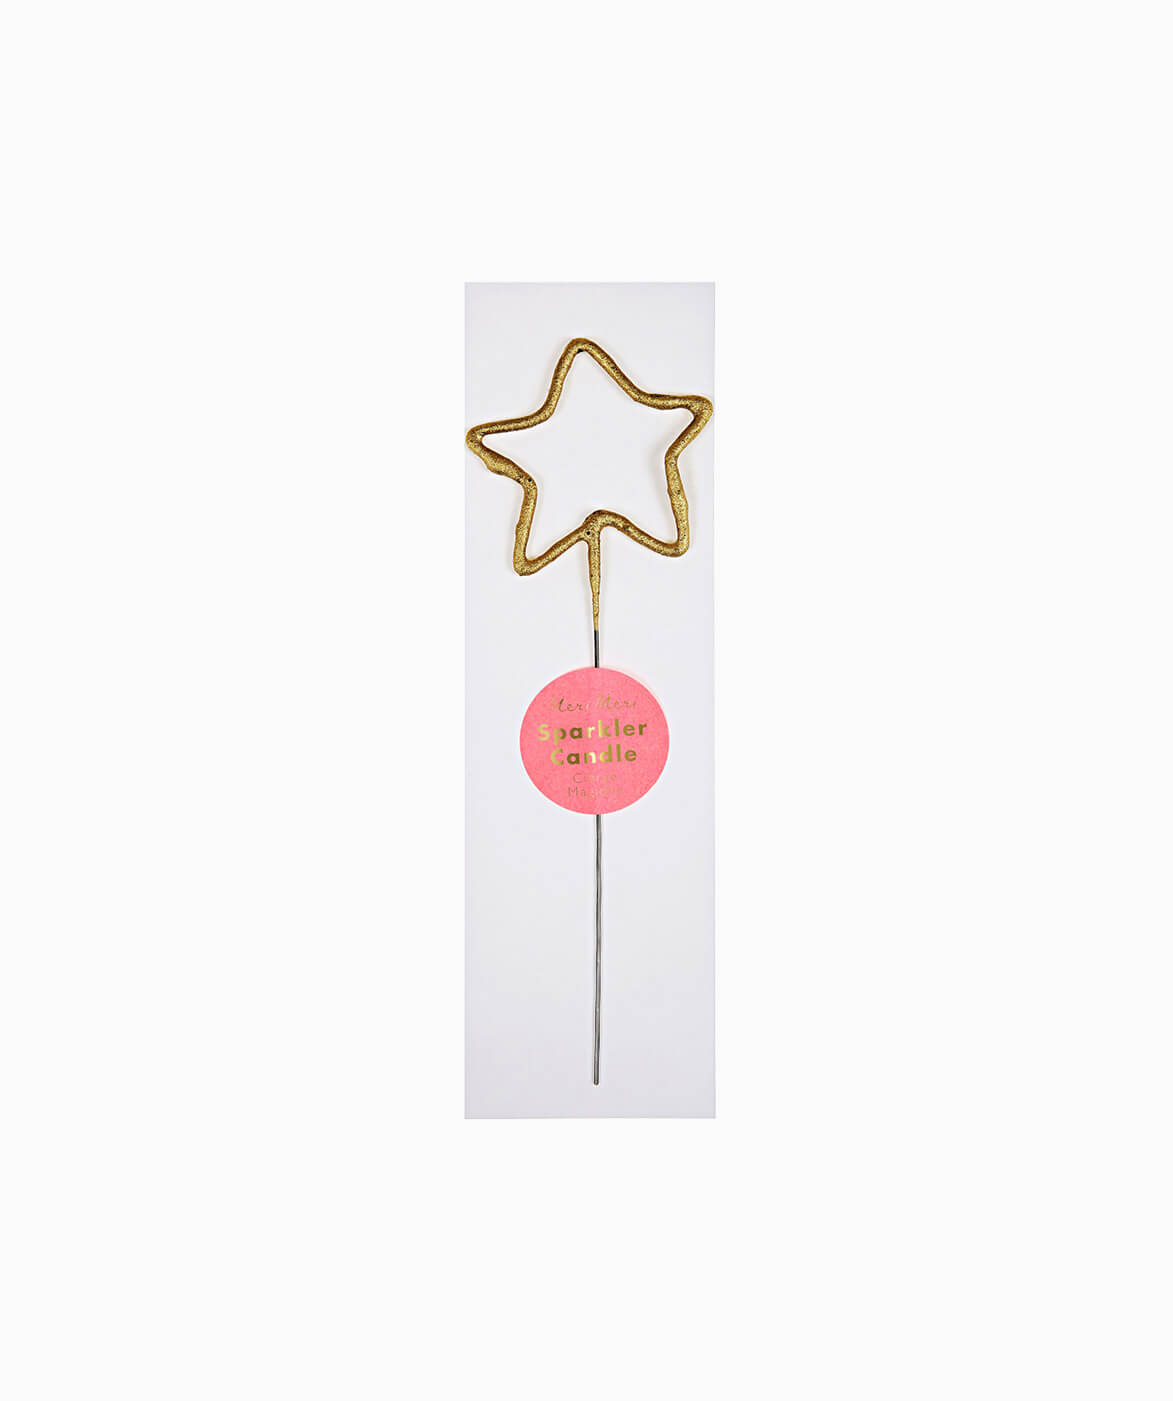 GOLD SPARKLER CANDLE STAR